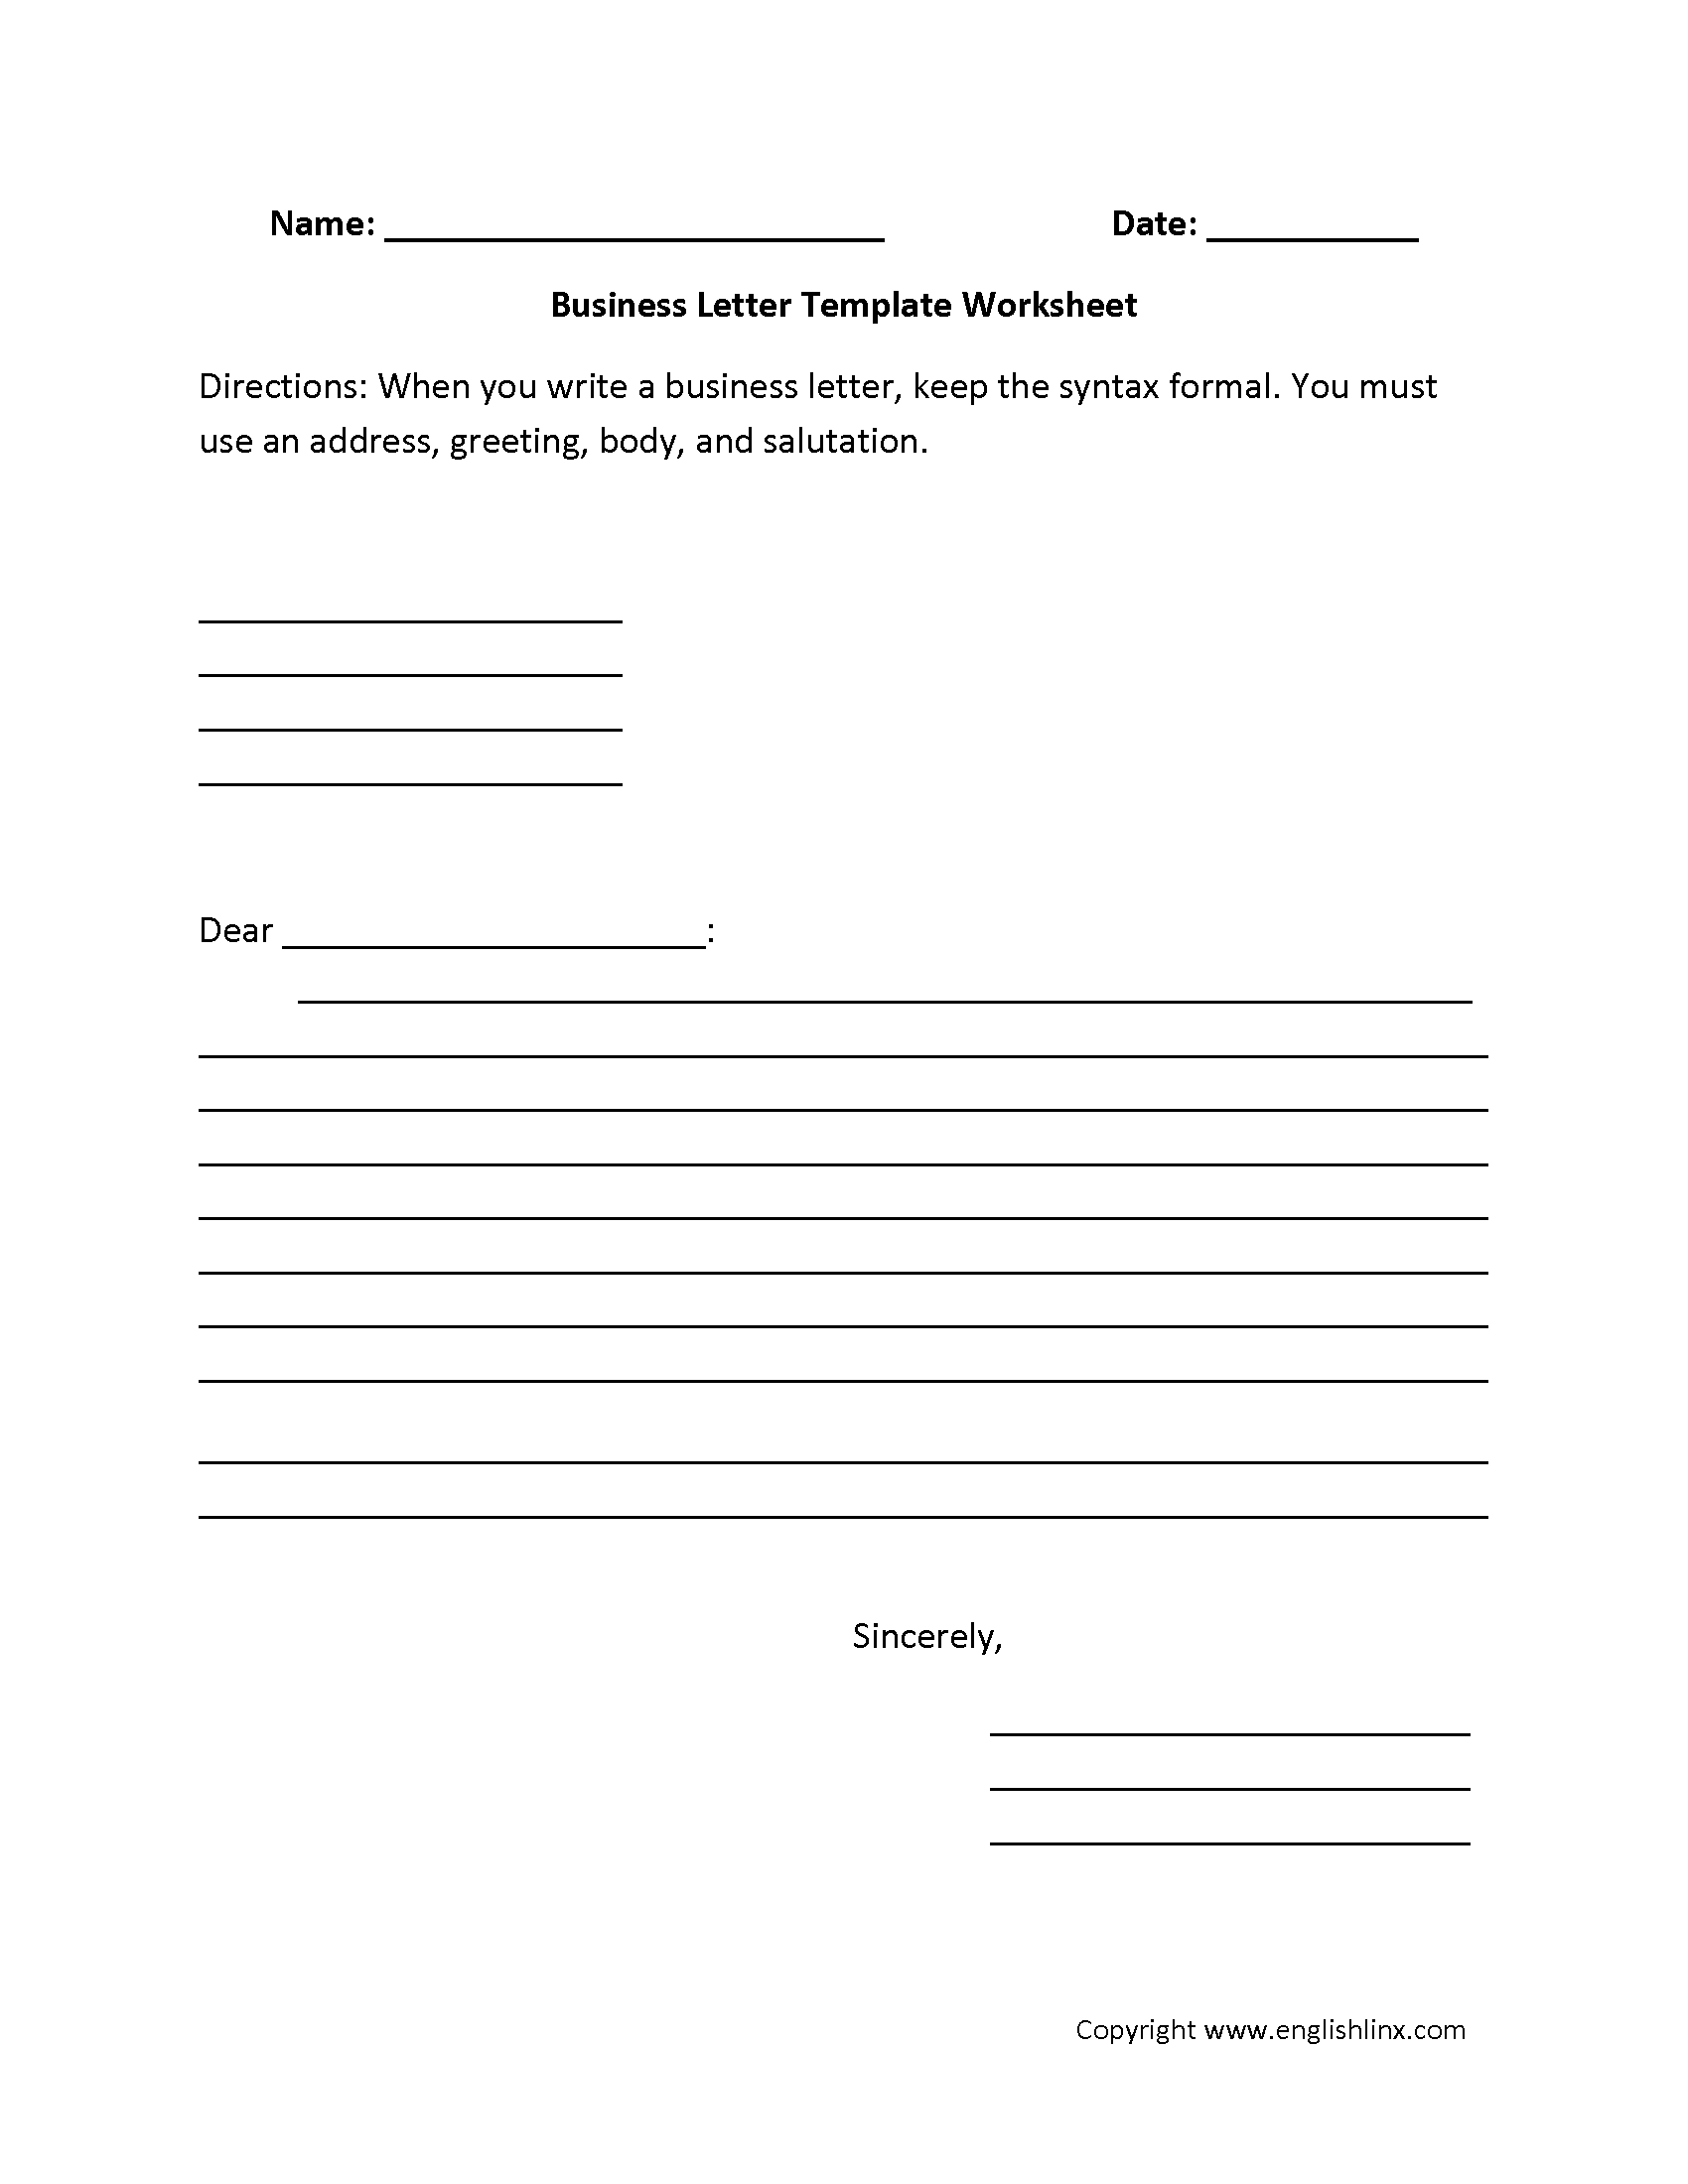 writing worksheets | letter writing worksheets